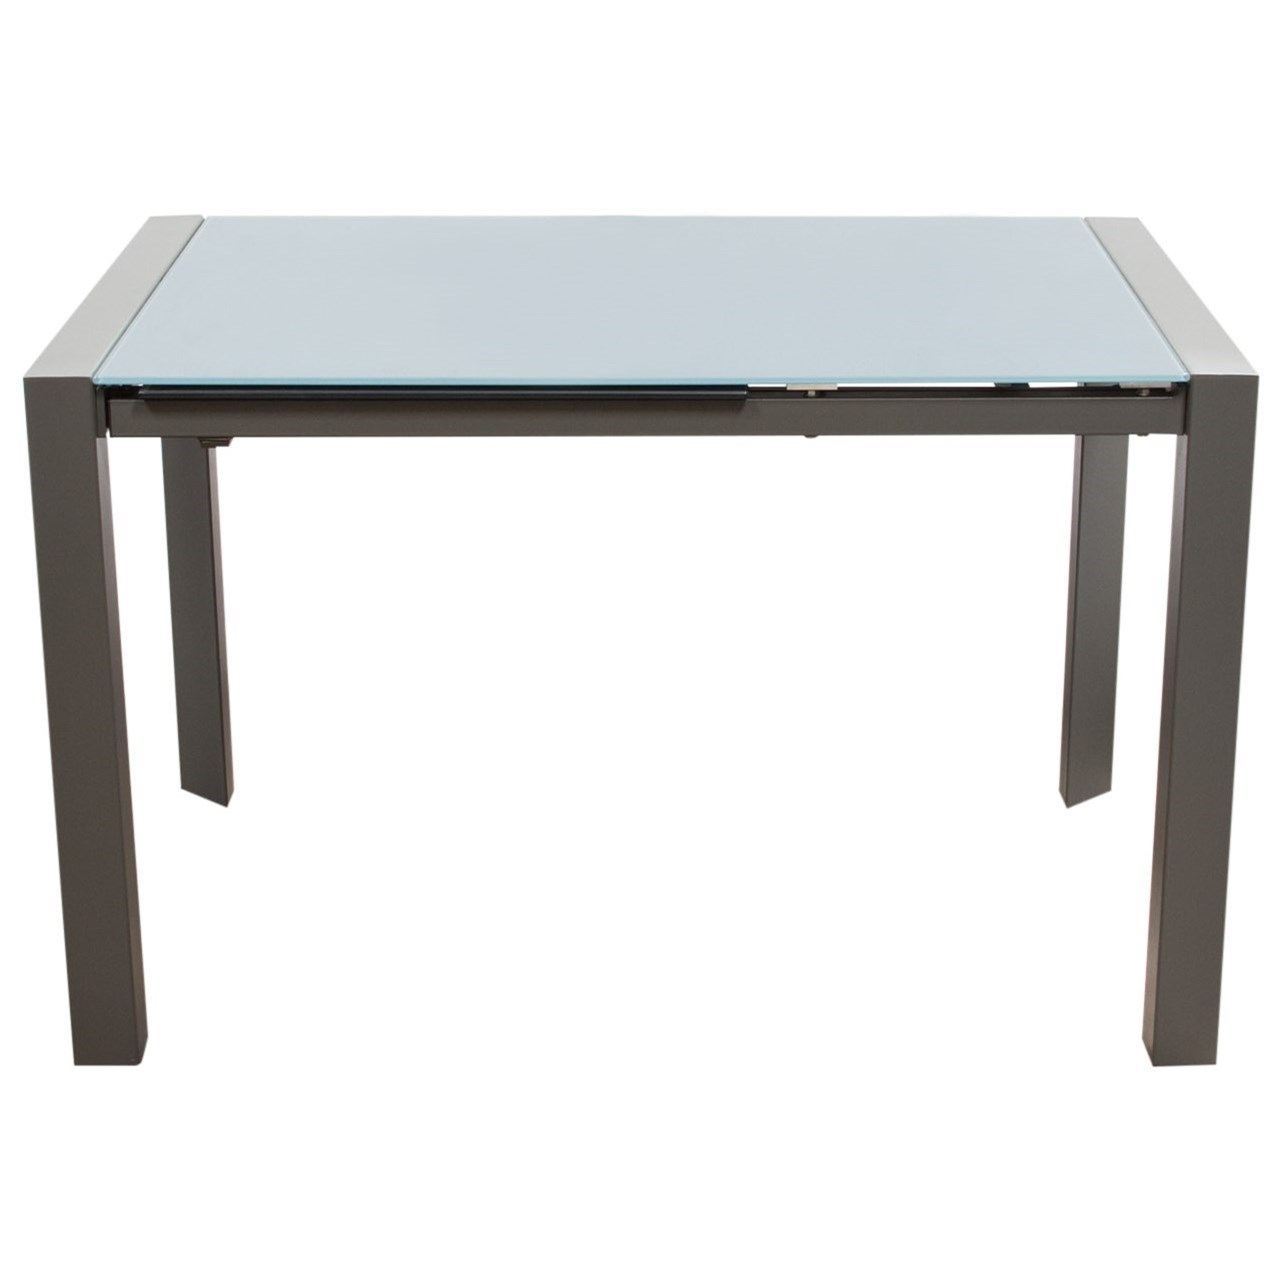 Diamond Sofa Dining Room Carbon Glass Top Extension Dining Table - Item Number: CARBONDT